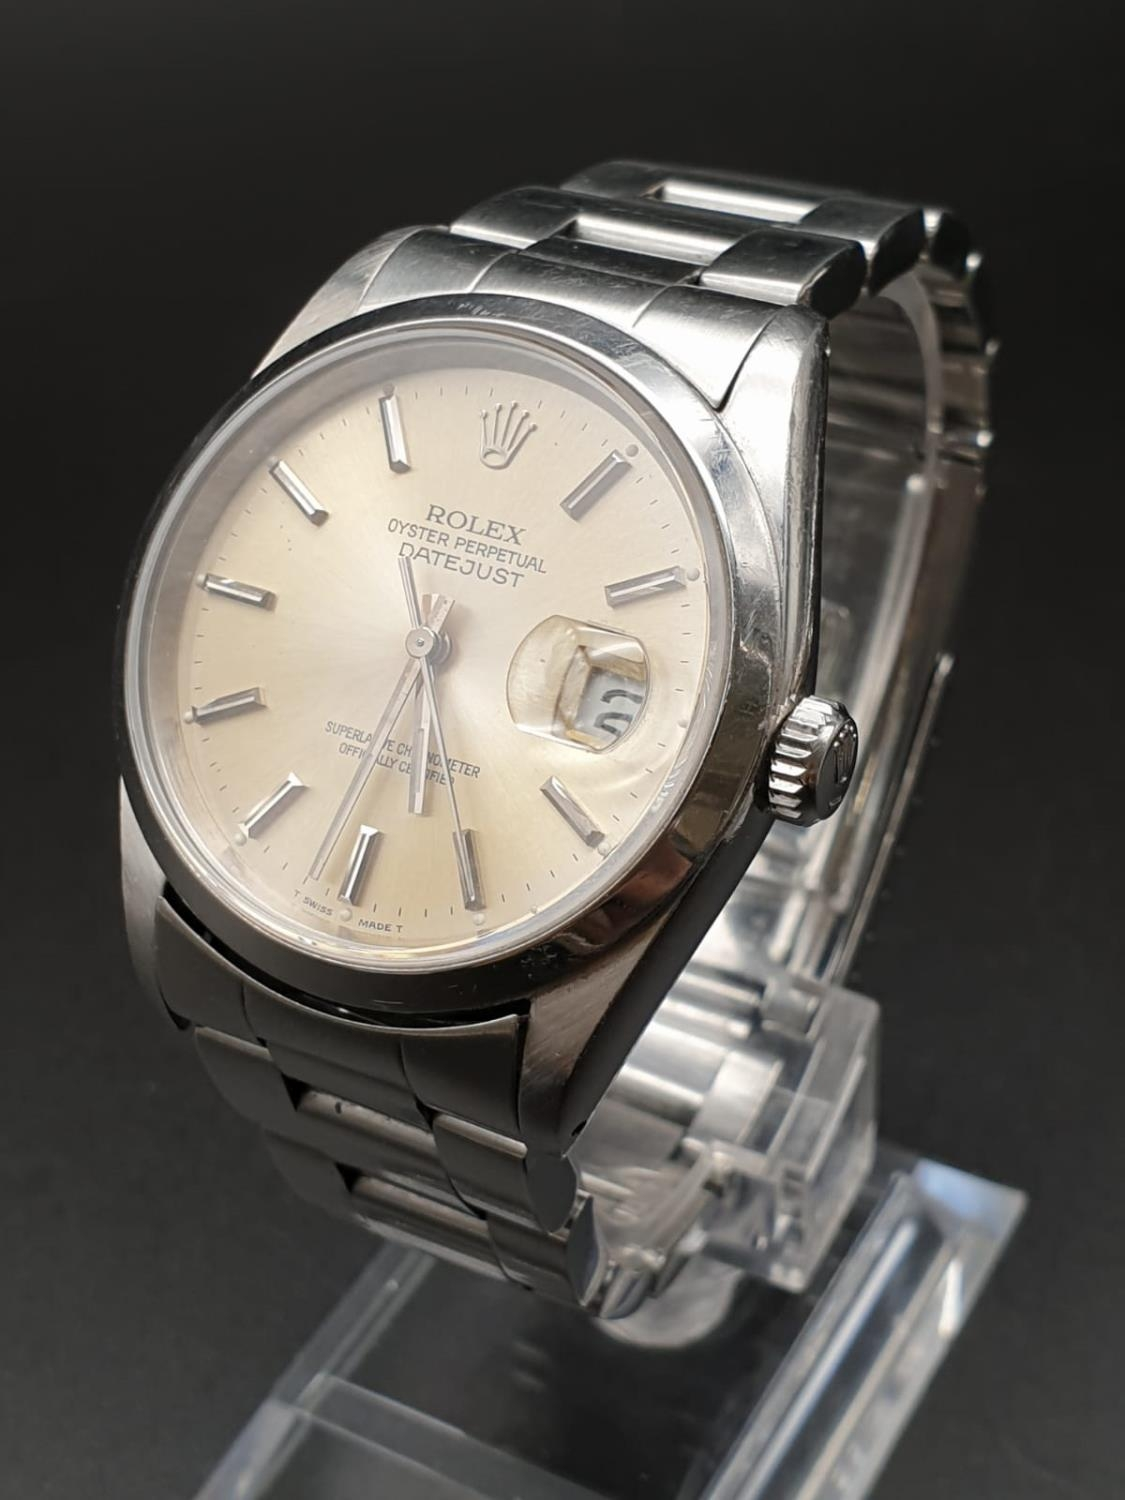 ROLEX OYSTER DATEJUST IN STAINLESS STEEL WITH ATTRACTIVE LIGHT OYSTER FACE, FWO 36MM - Image 2 of 10